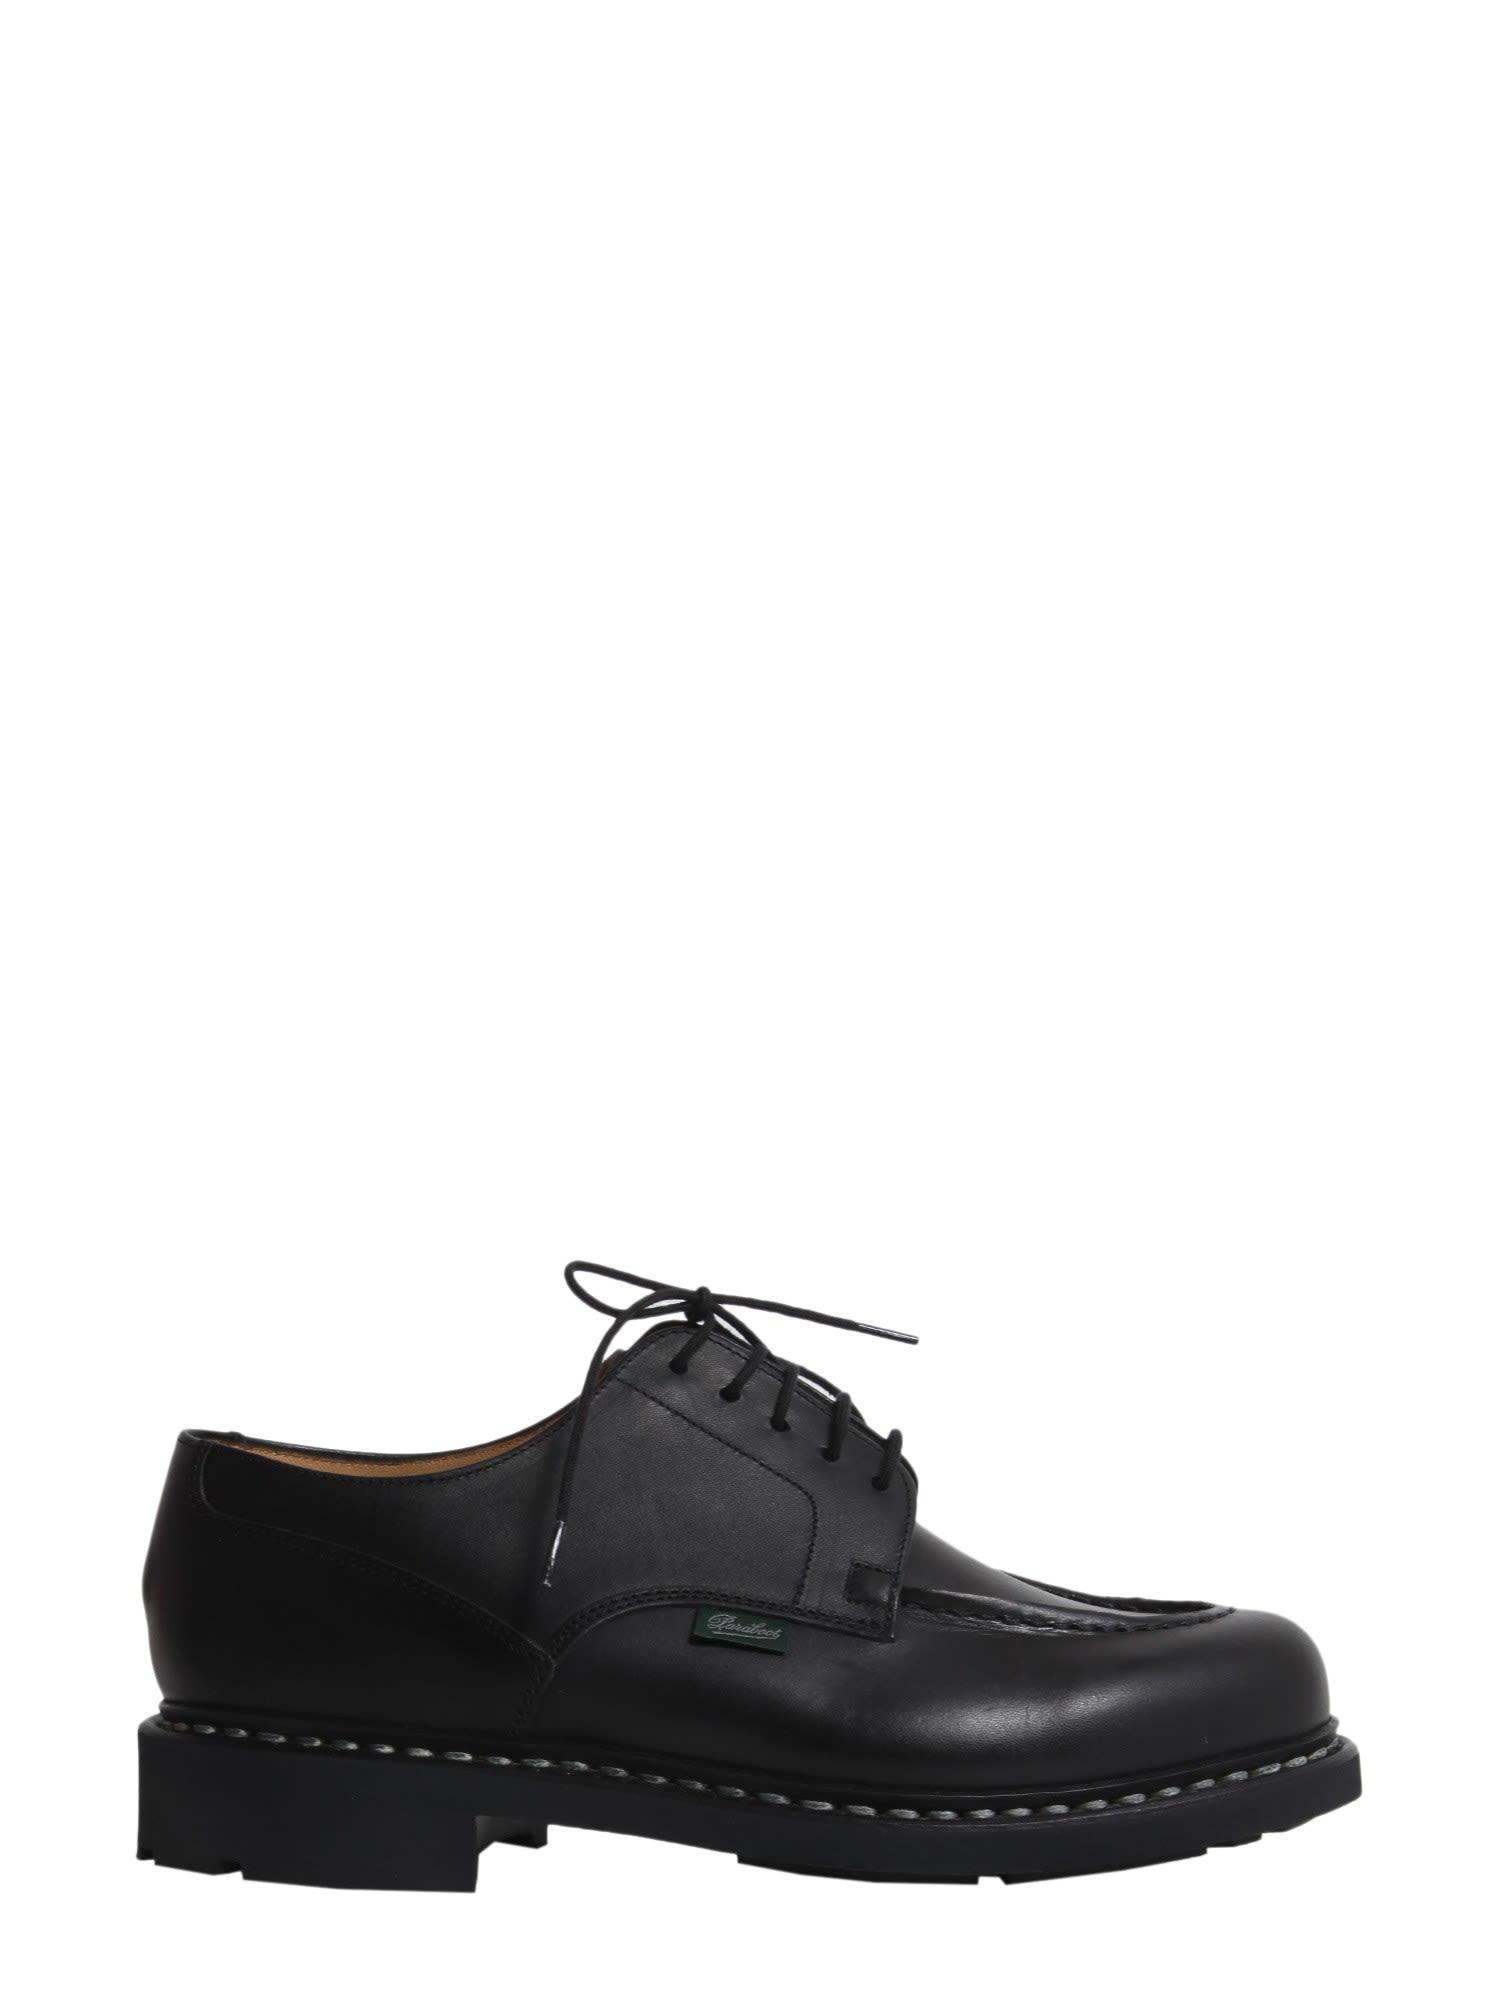 Paraboot Chambord Lace-up Shoes In Nero